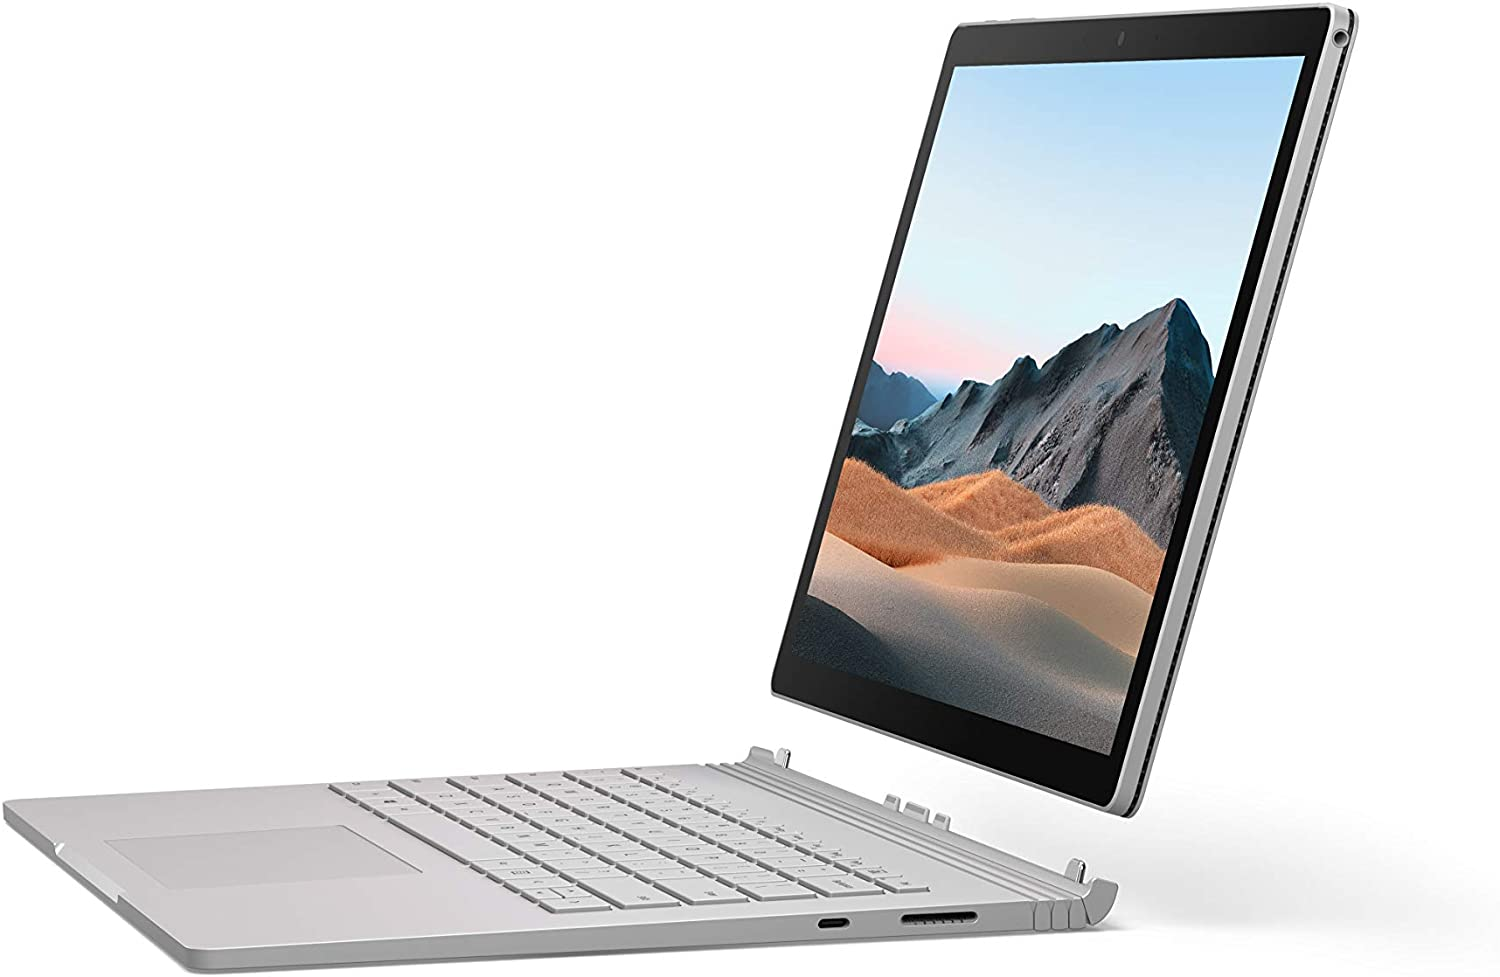 "NEW Microsoft Surface Book 3 - 13.5"" Touch-Screen - 10th Gen Intel Core i7 - 16GB Memory - 256GB SSD (Latest Model) - Platinum"